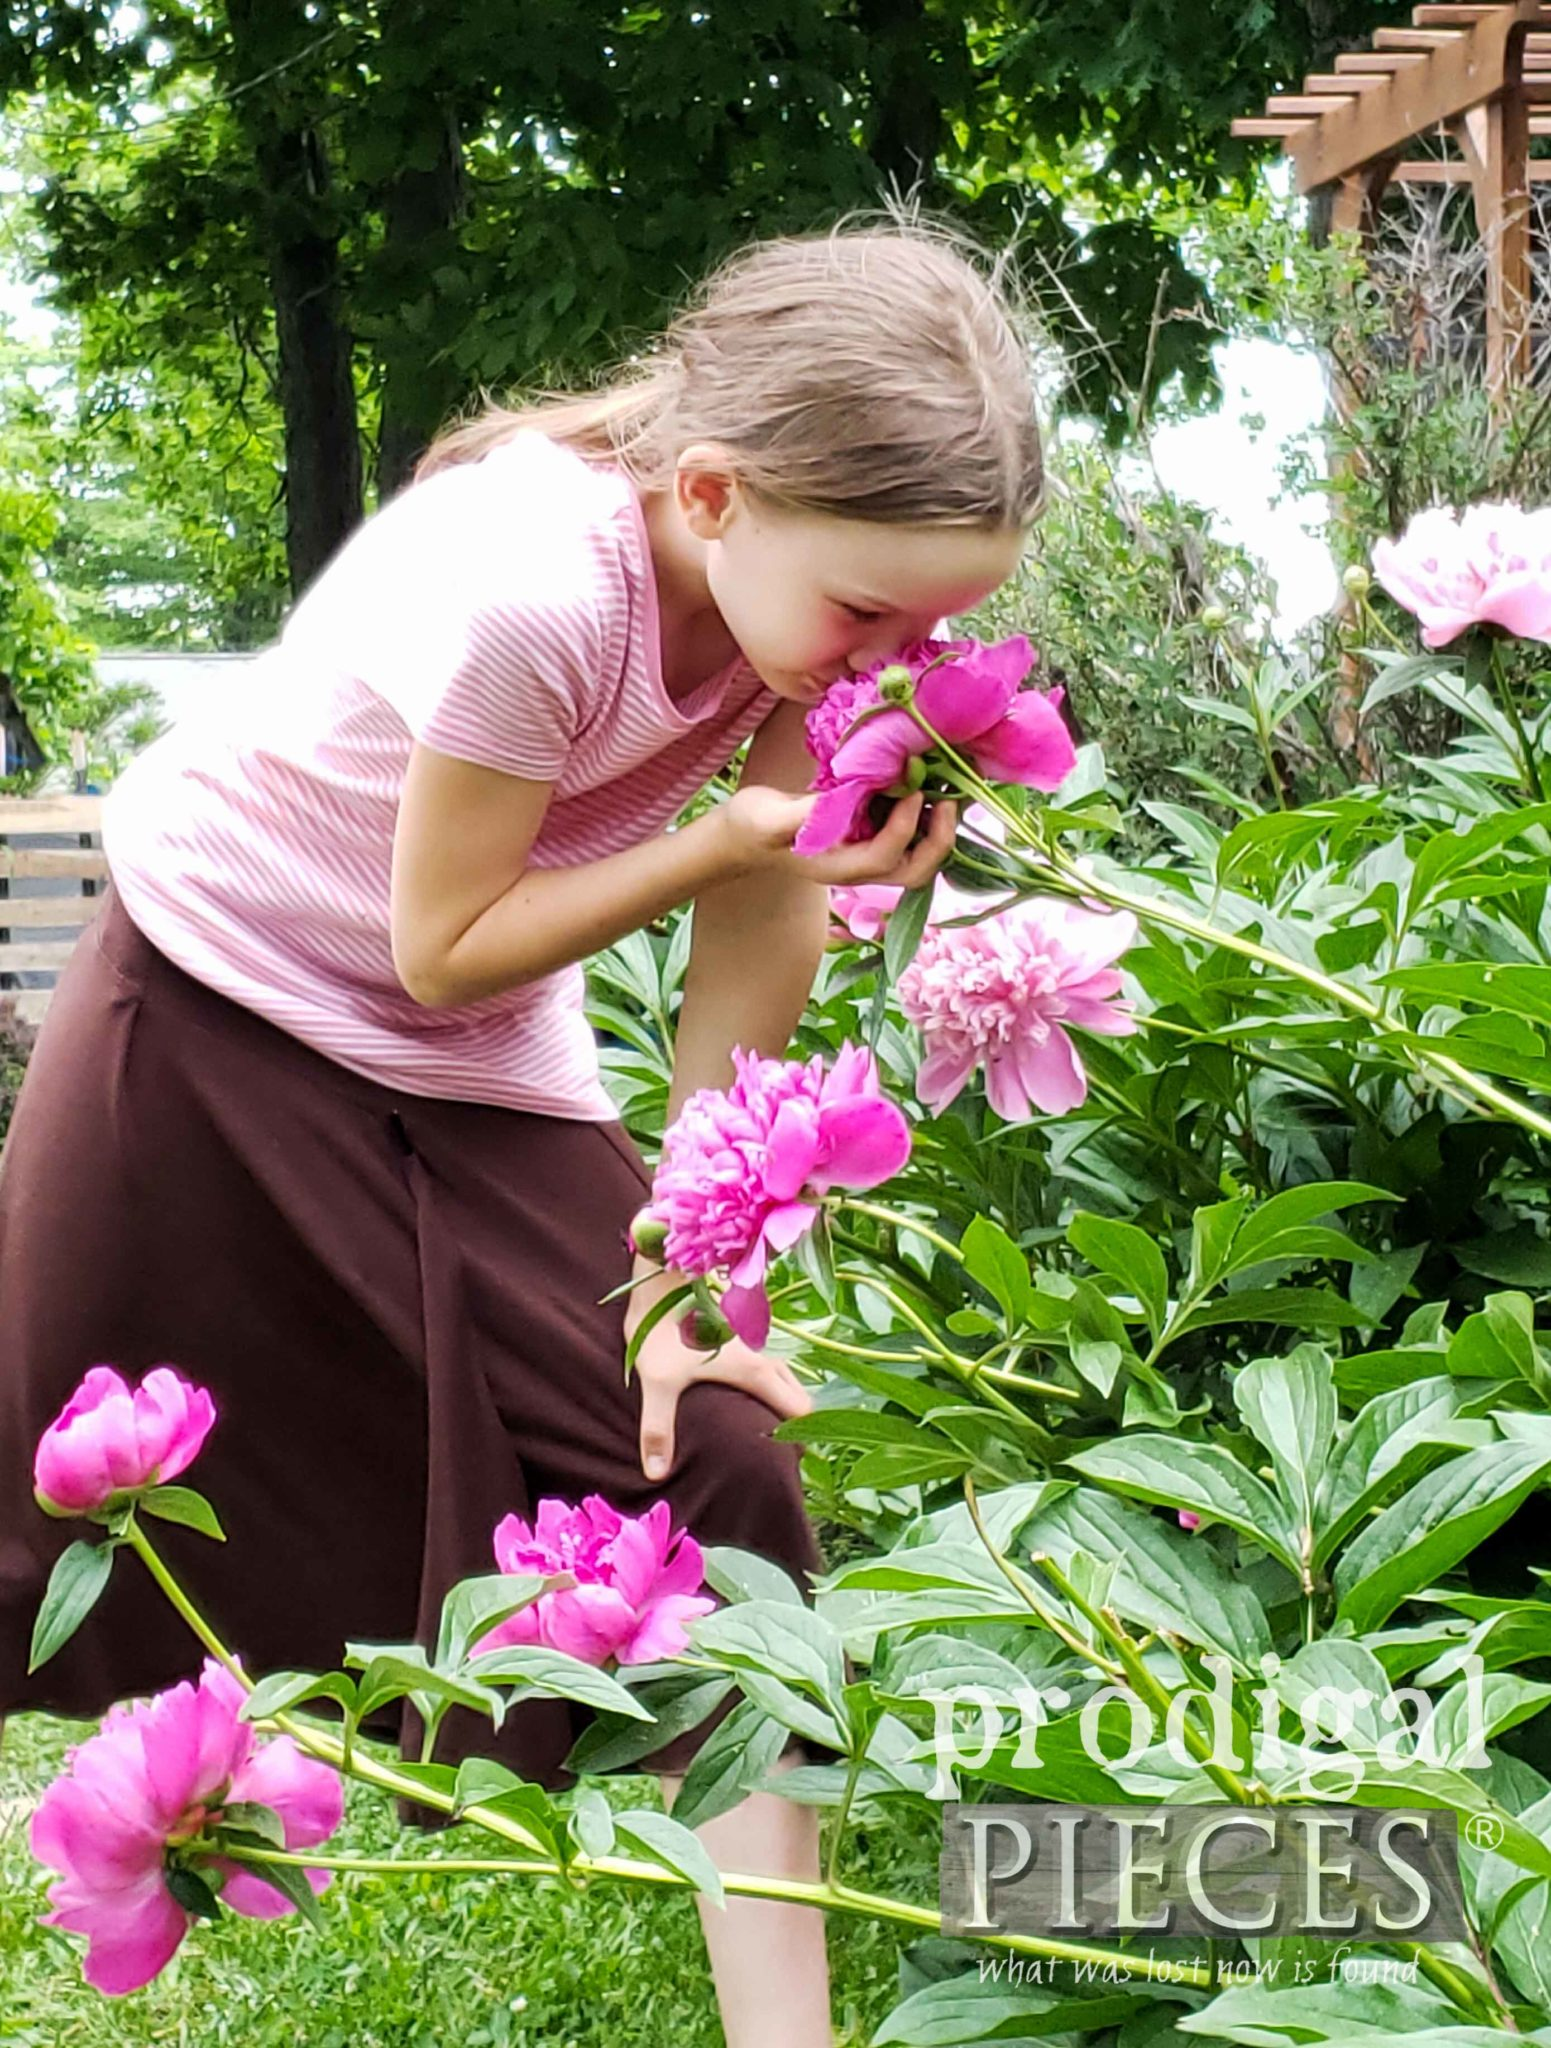 Girl Smelling Peonies | prodigalpieces.com #prodigalpieces #flower #peony #garden